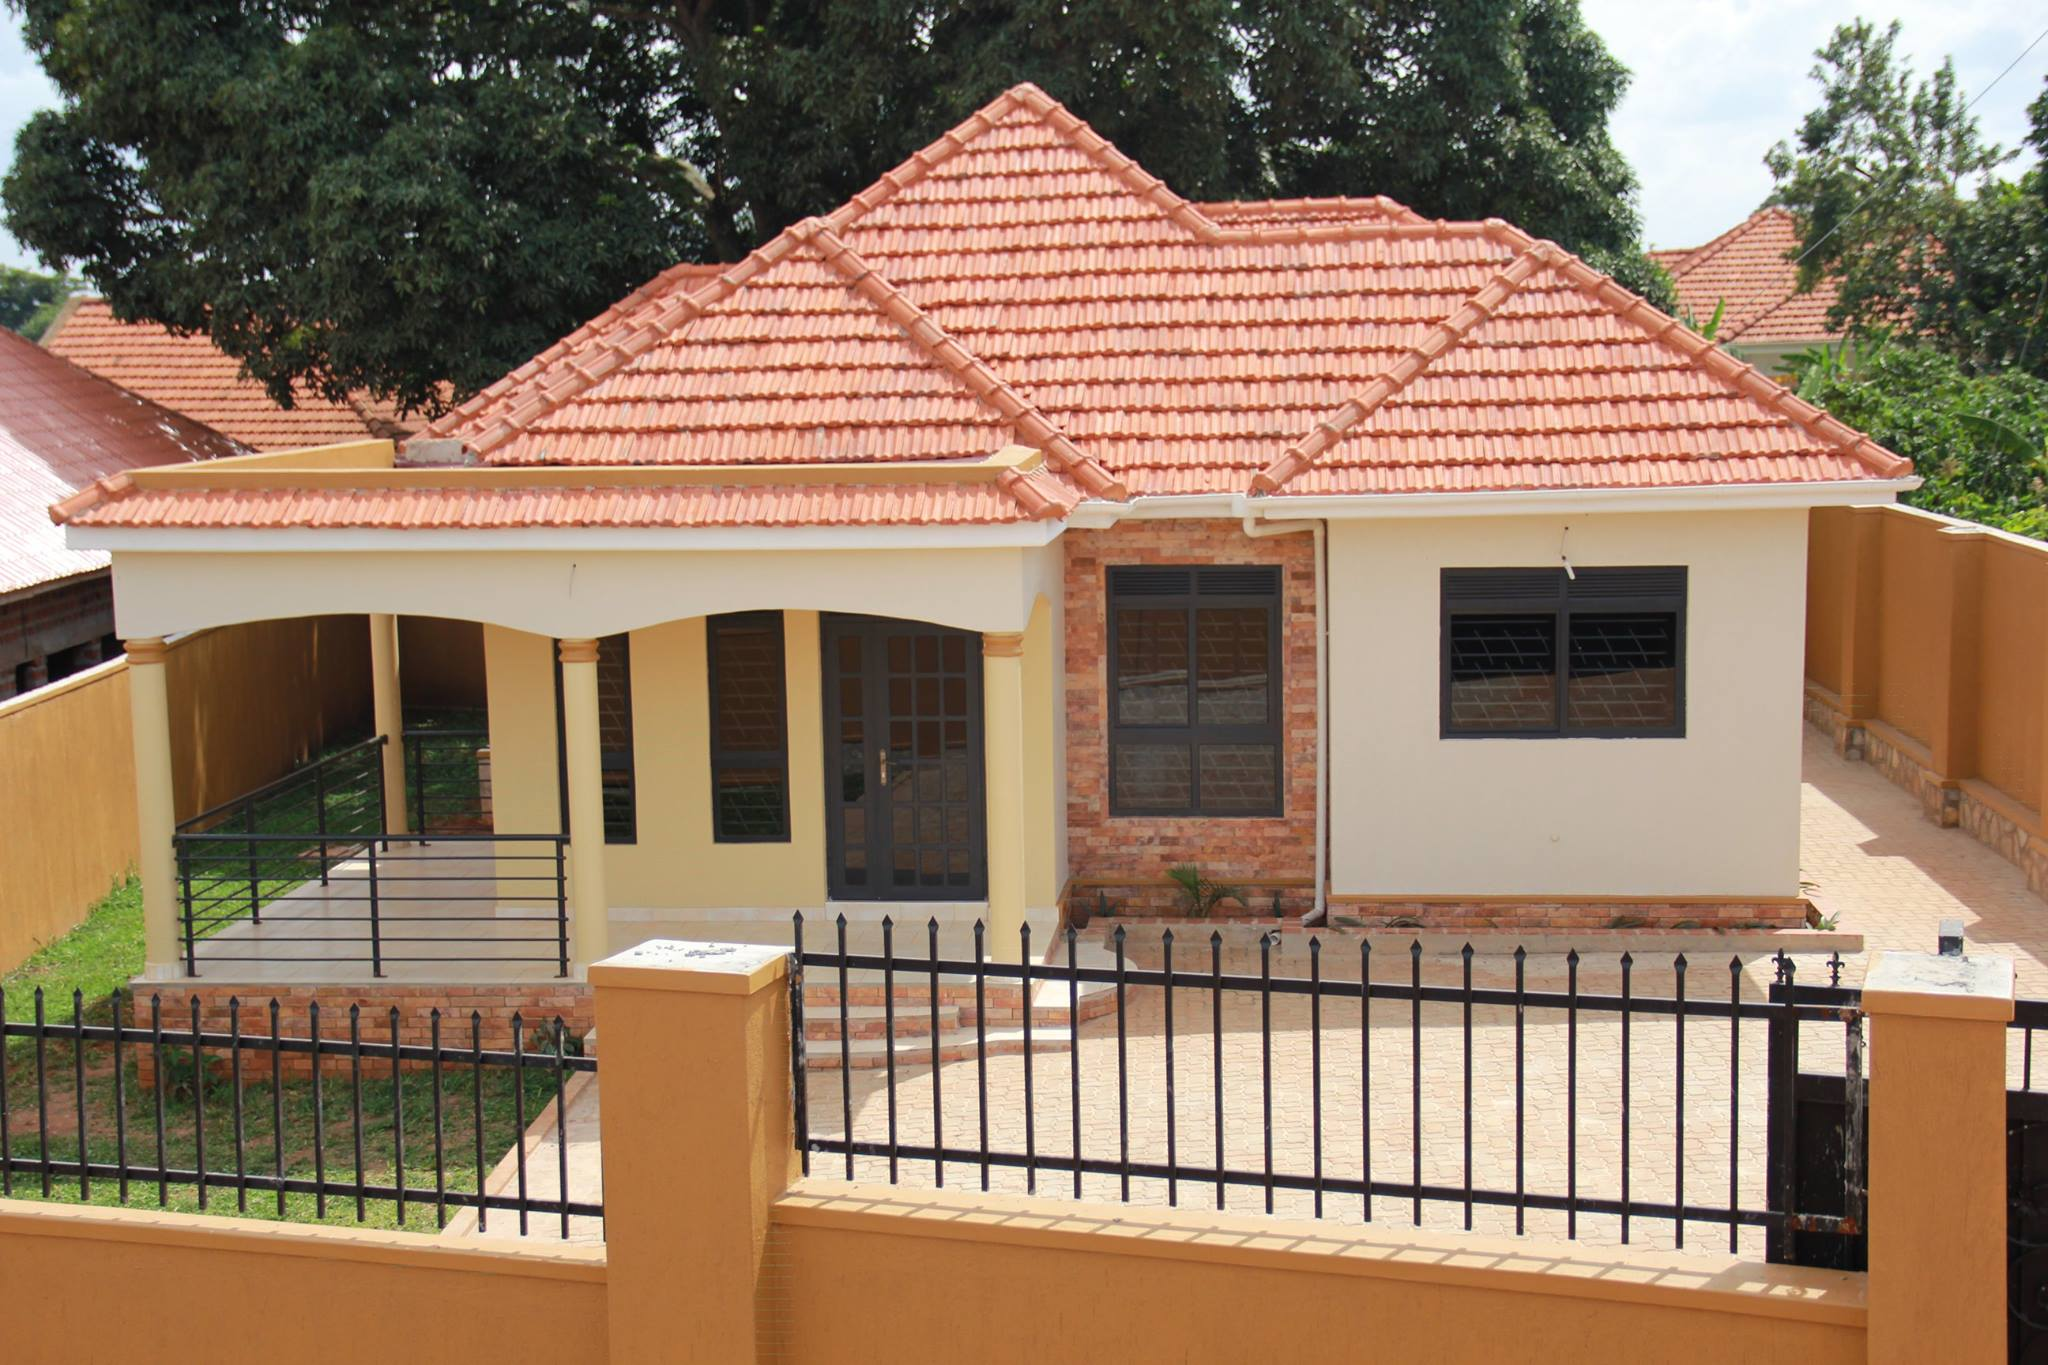 3 bedroom house for sale in entebbe road uganda